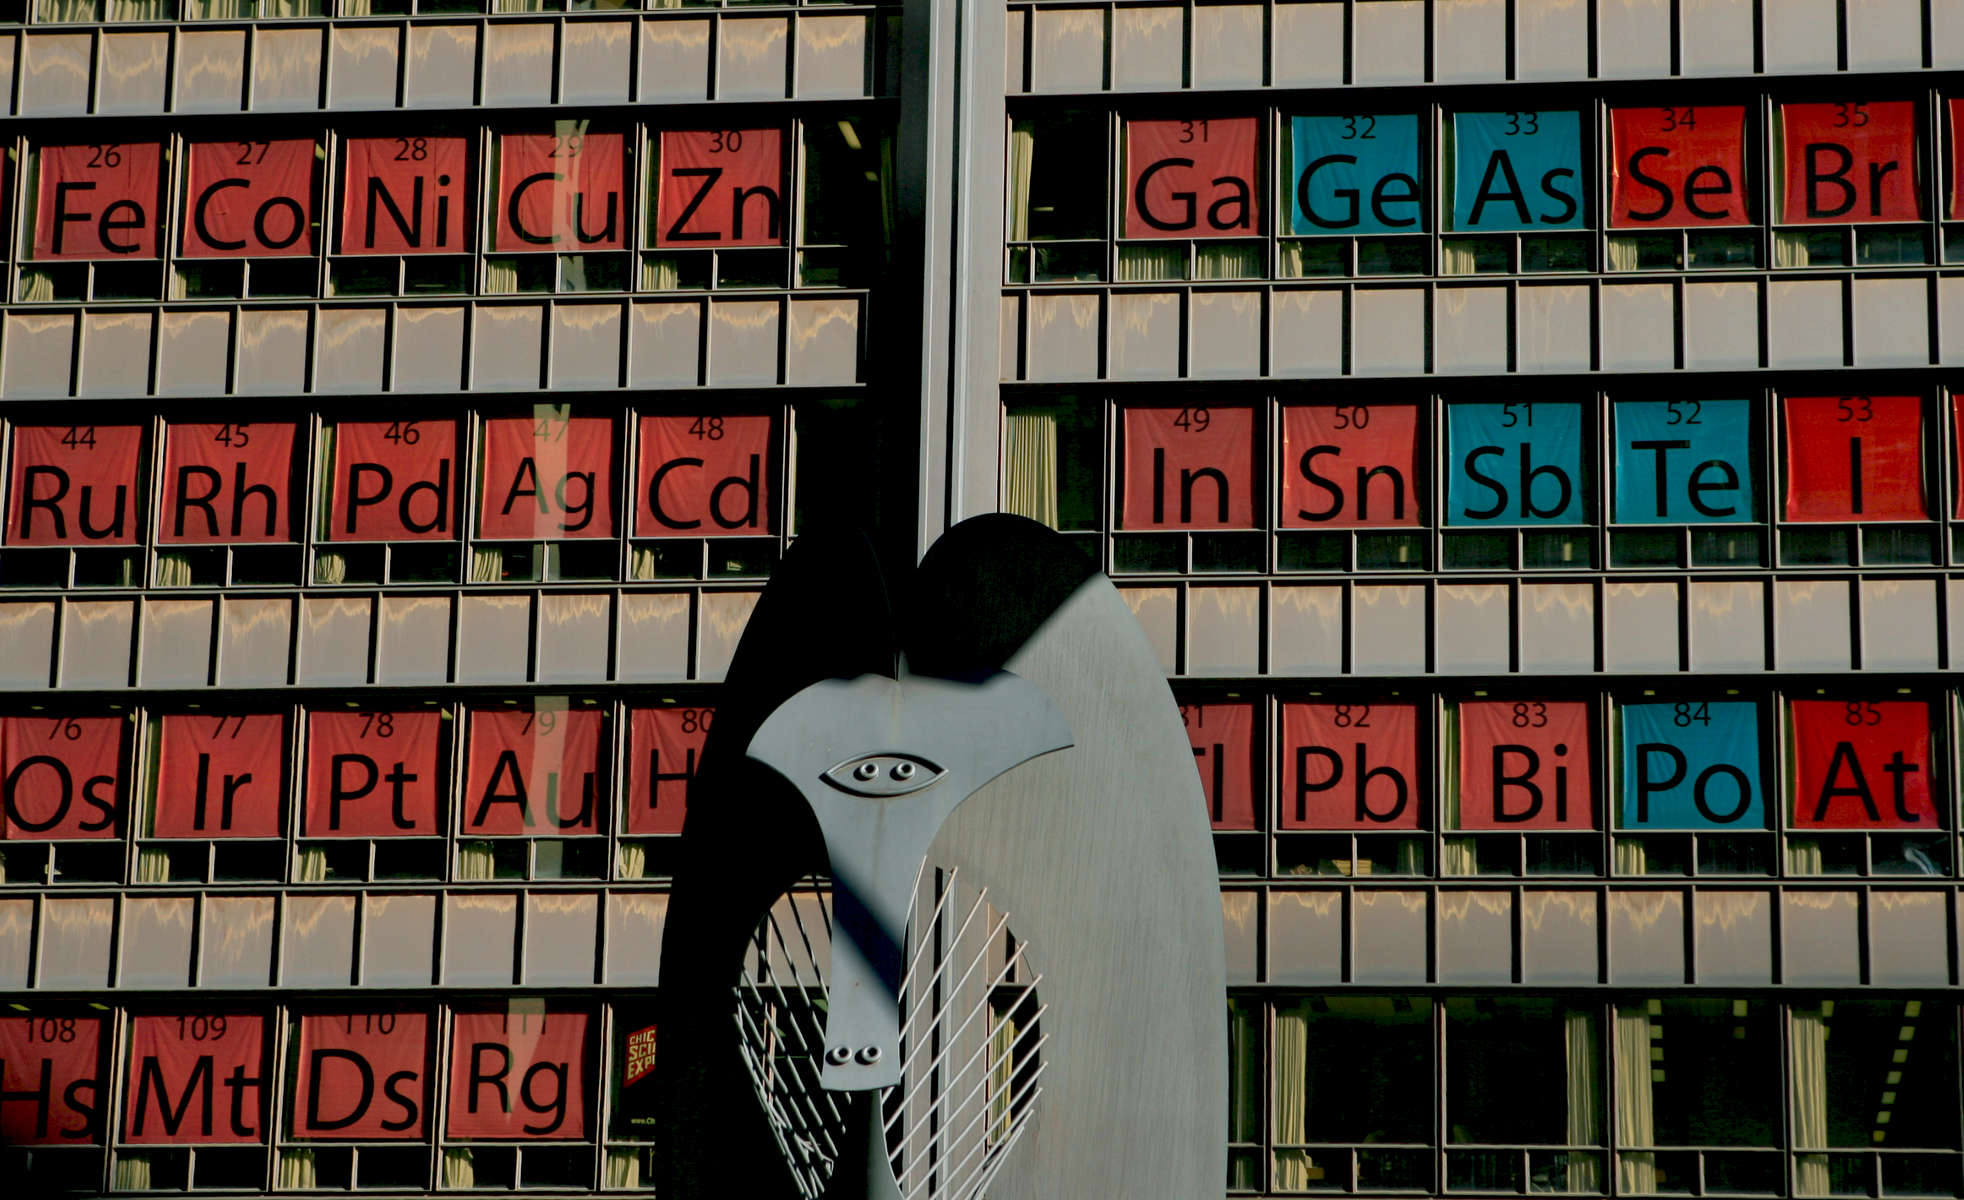 The world's largest periodic table at the Daley Plaza to promote science education.